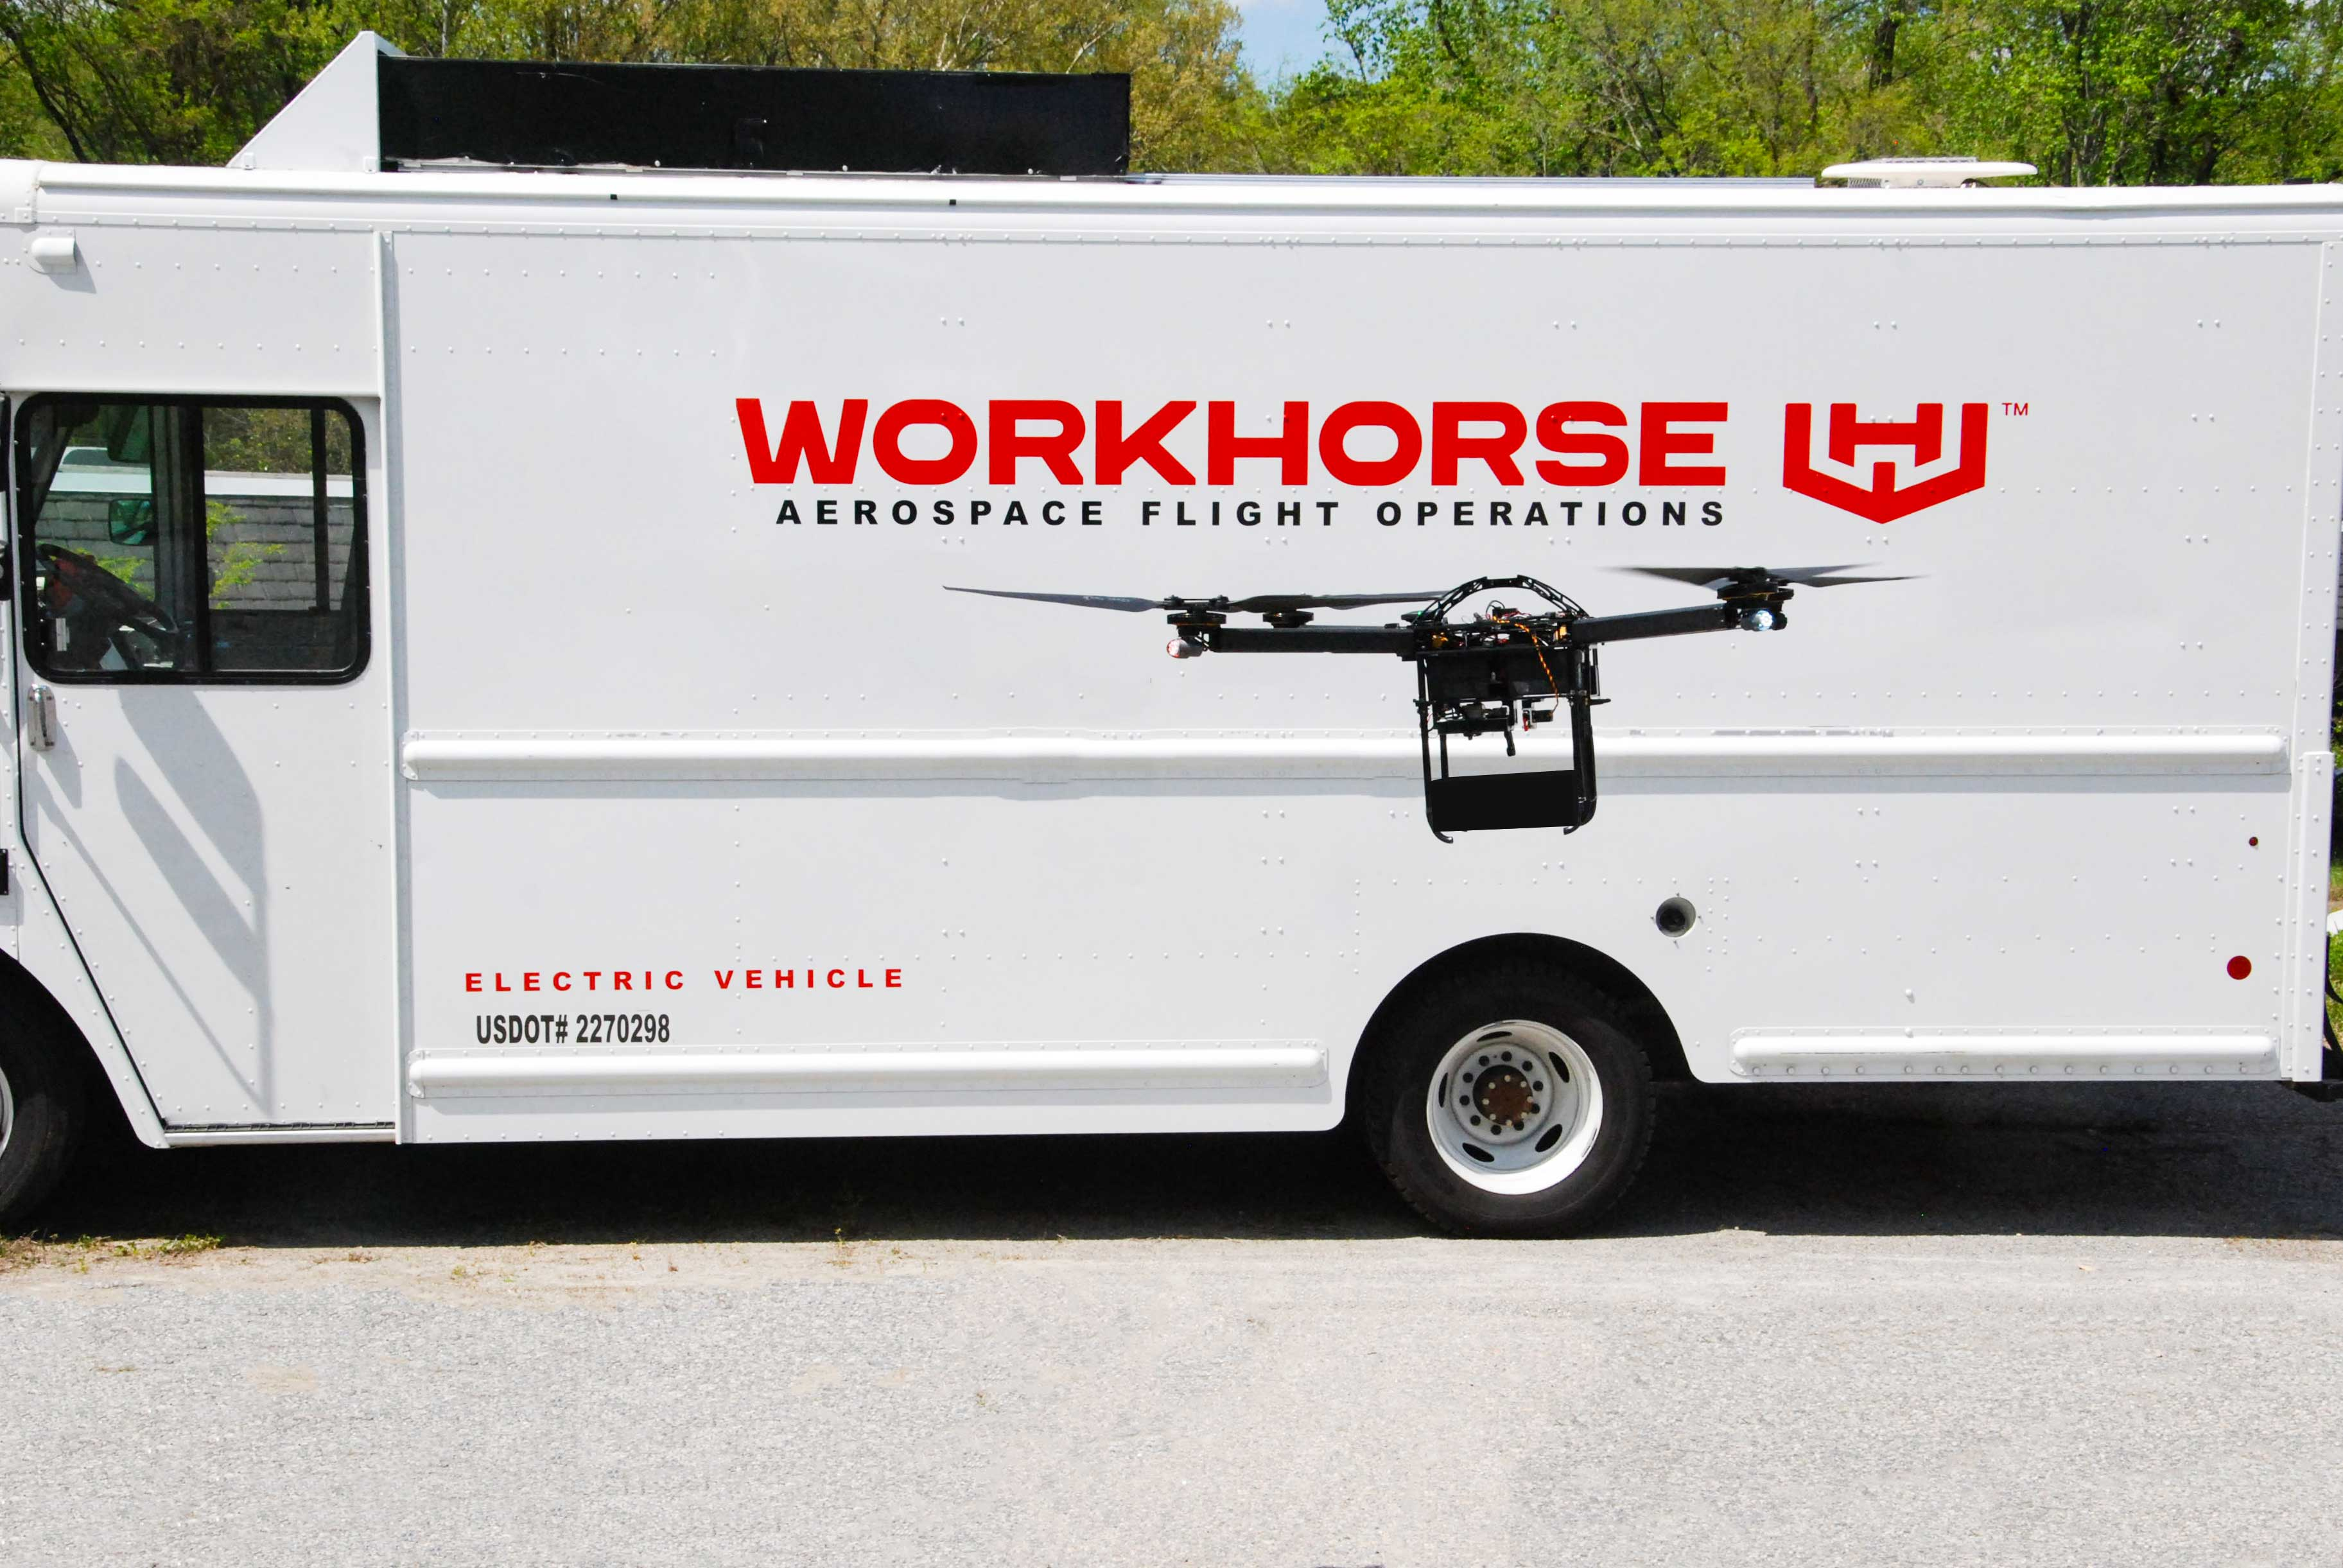 Is Workhorse (WKHS) Stock All Set To Rebound To $15 in June?